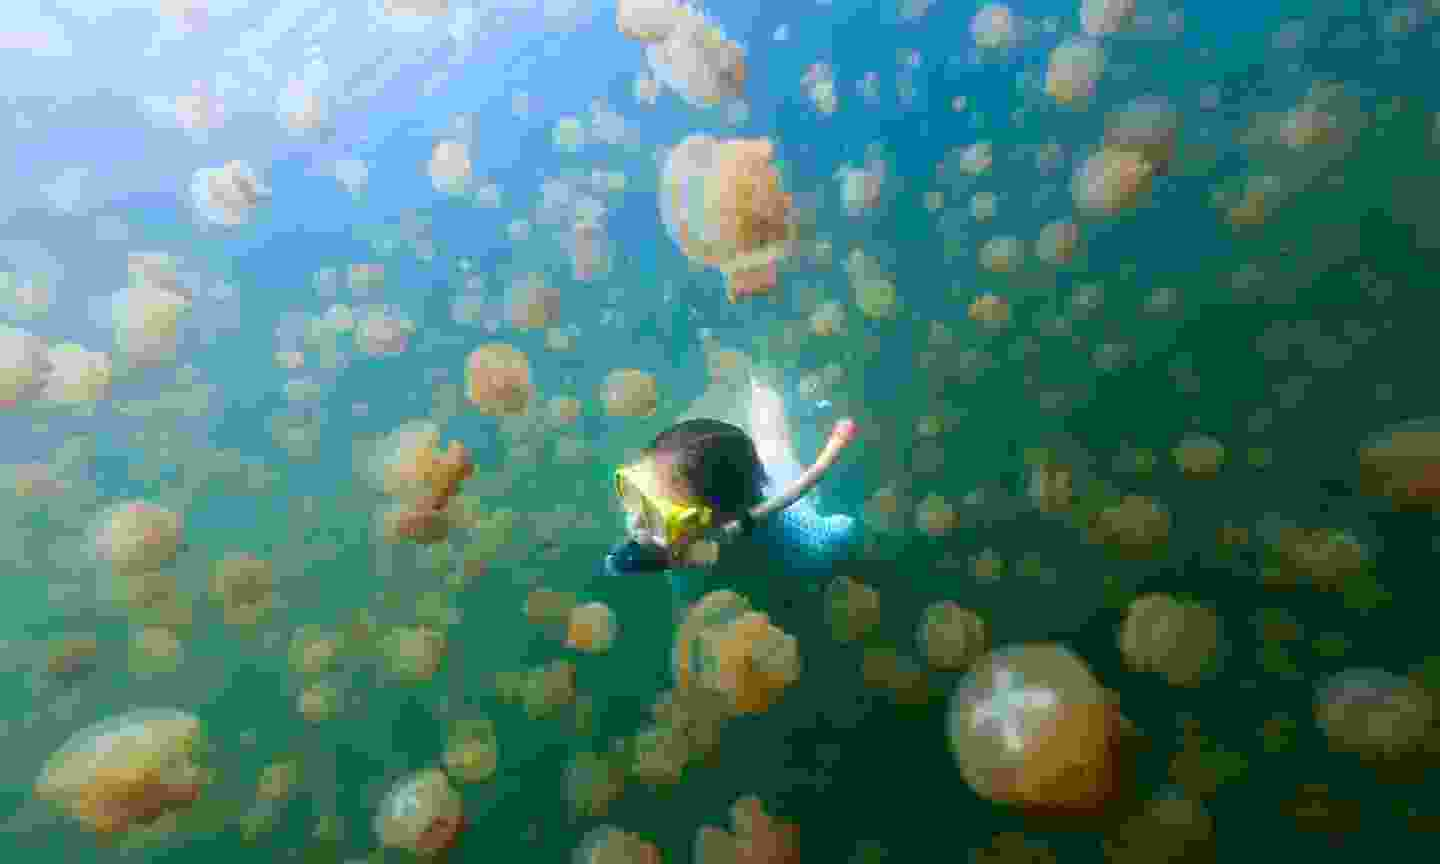 Snorkel among the golden jellyfish in Palau (Shutterstock)